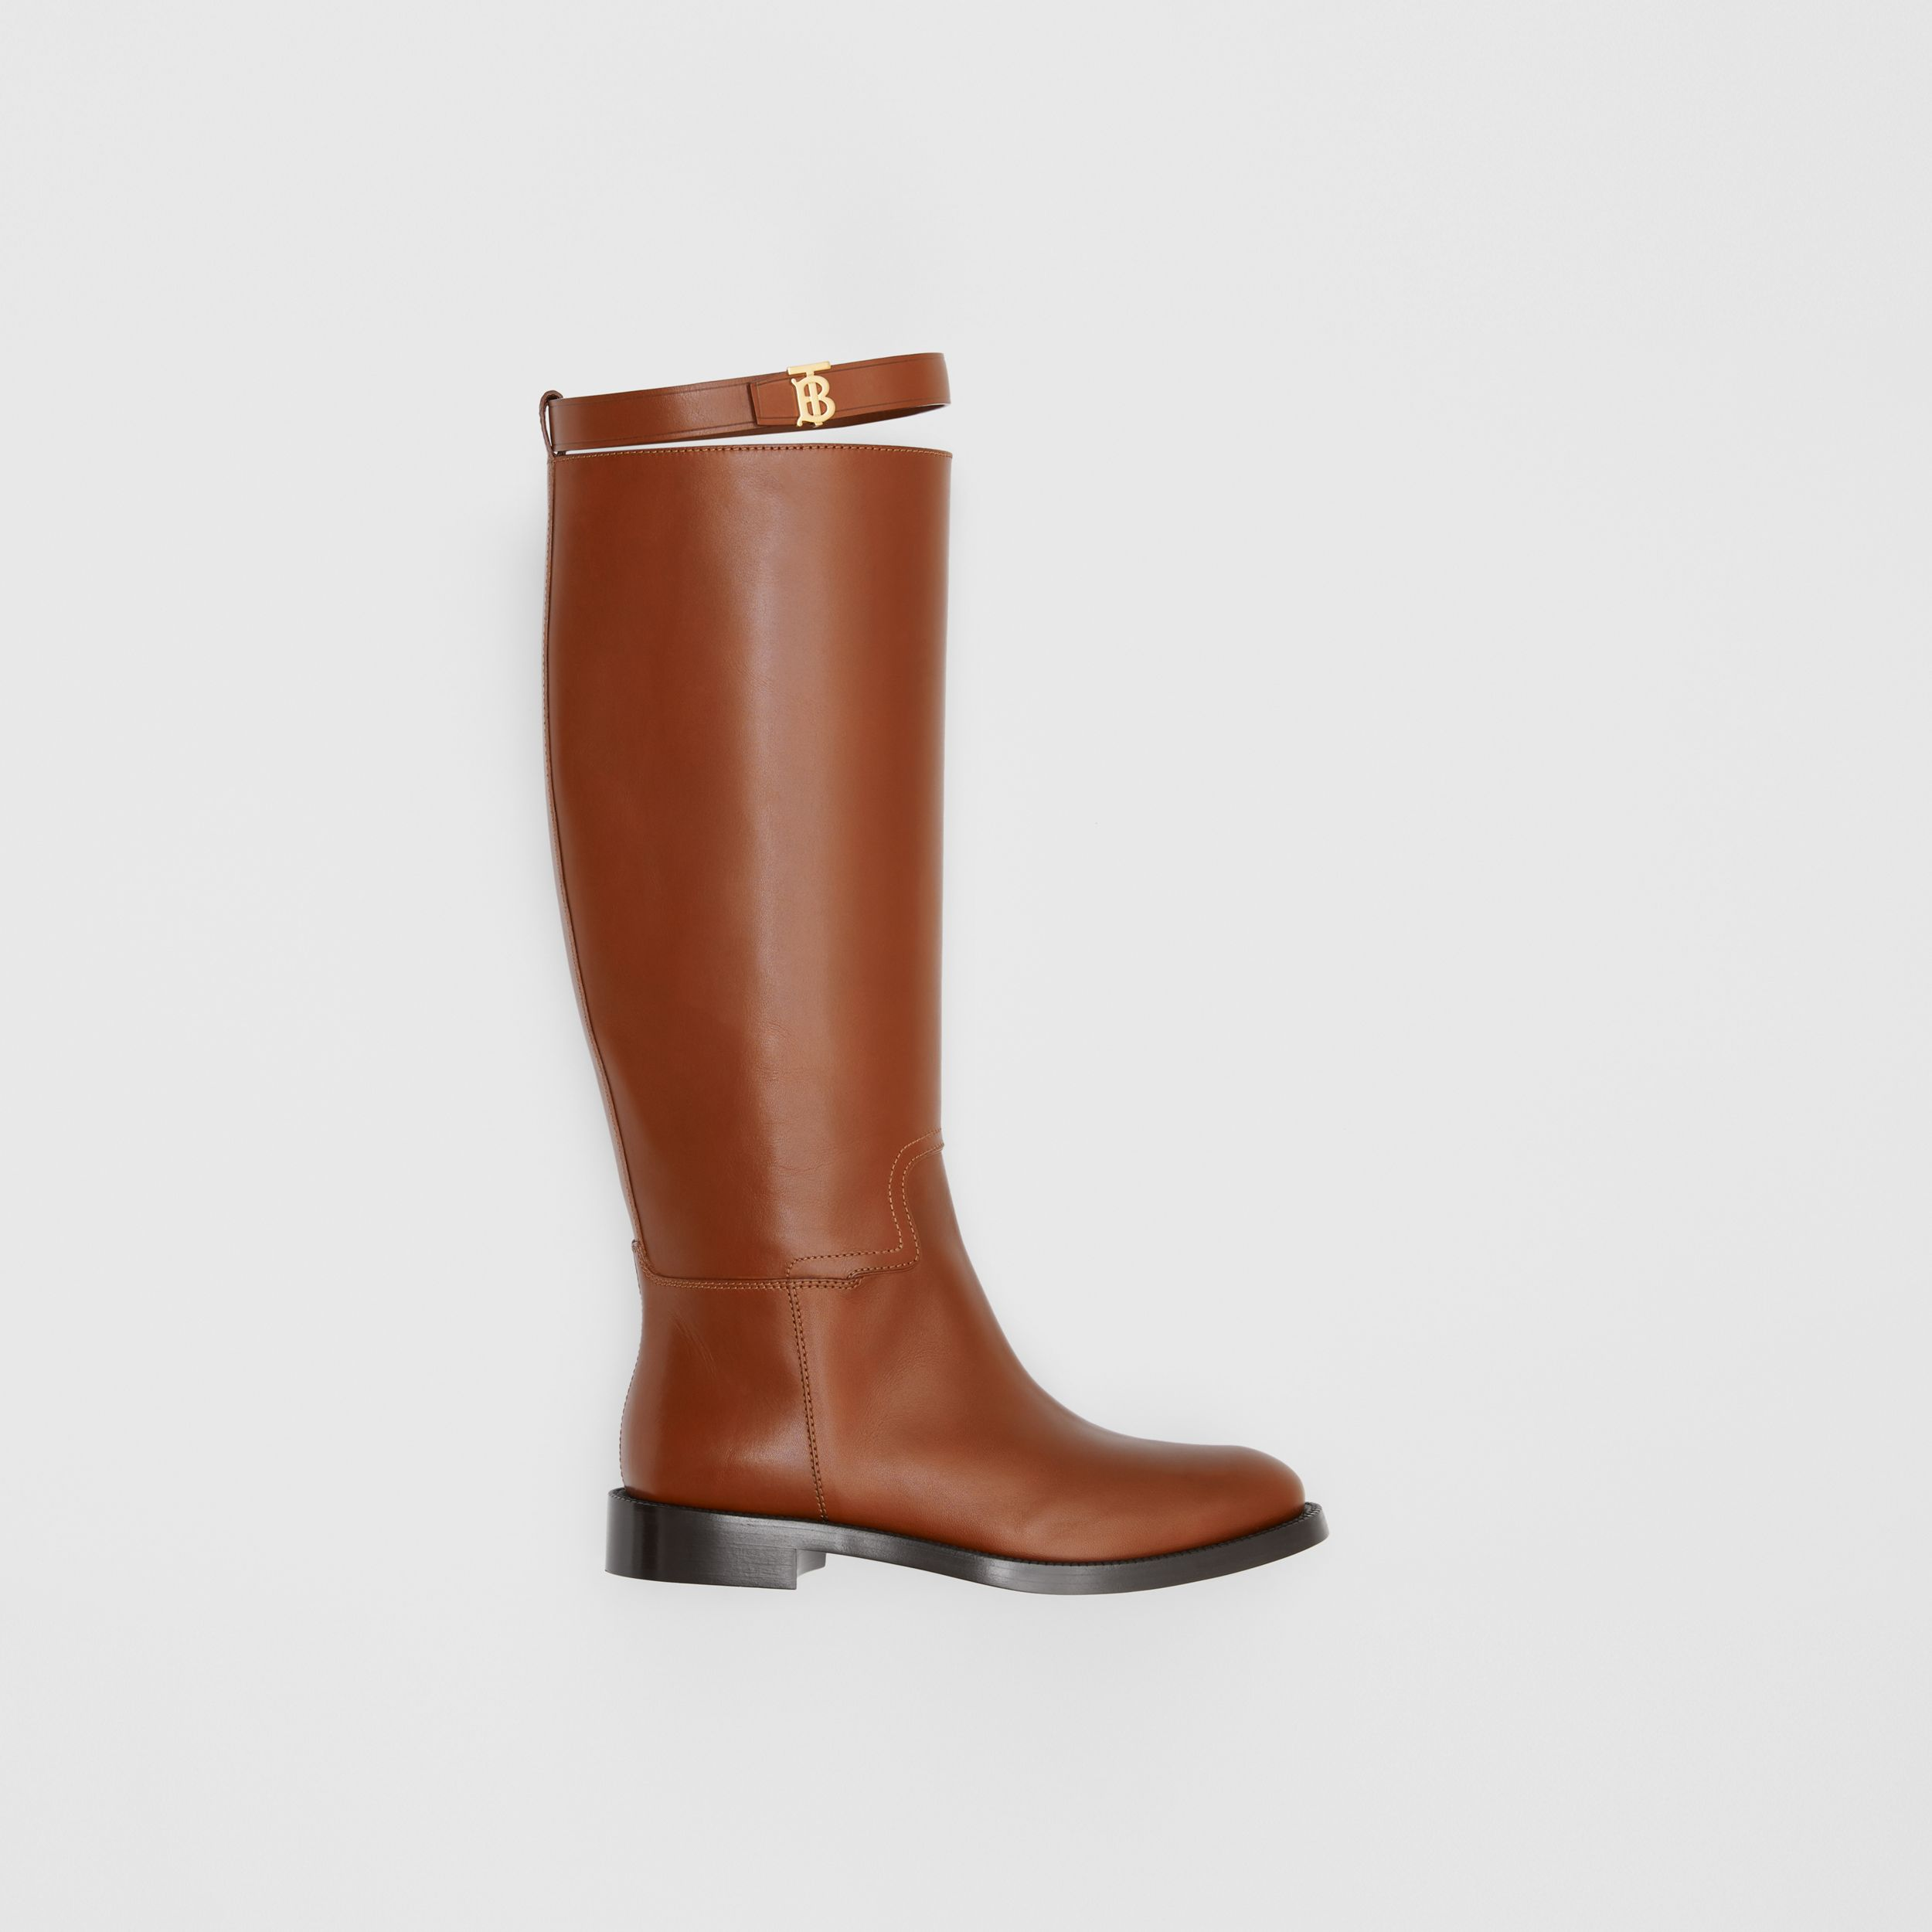 Monogram Motif Leather Knee-high Boots in Tan - Women | Burberry - 1